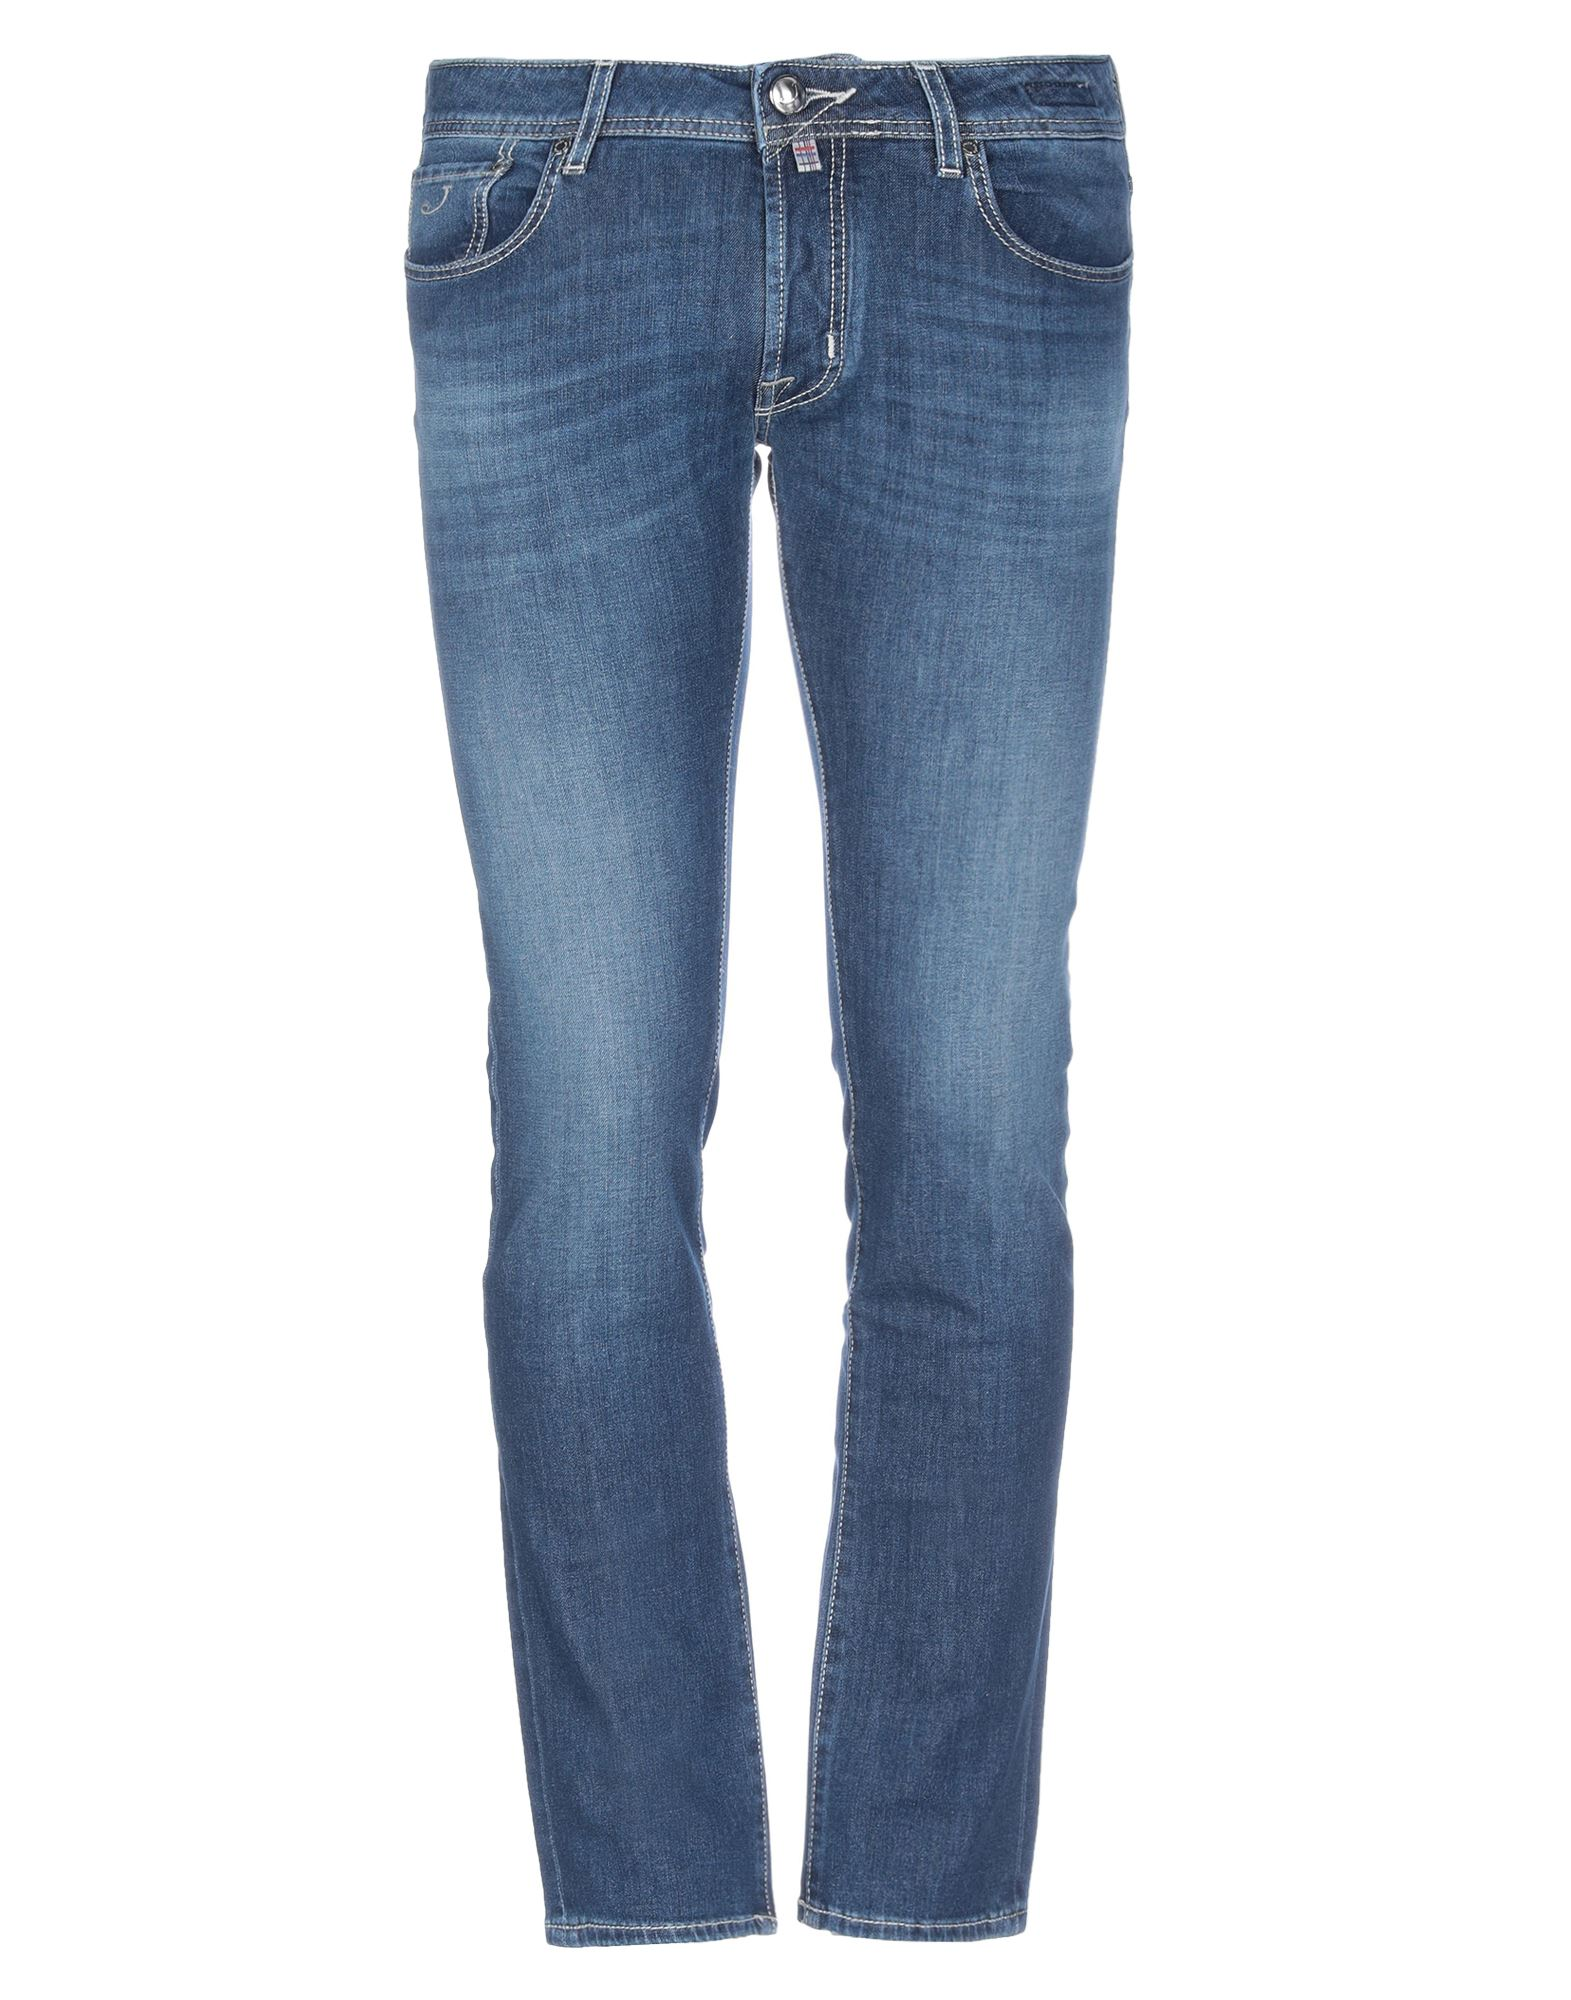 JACOB COHЁN Denim pants - Item 42829387